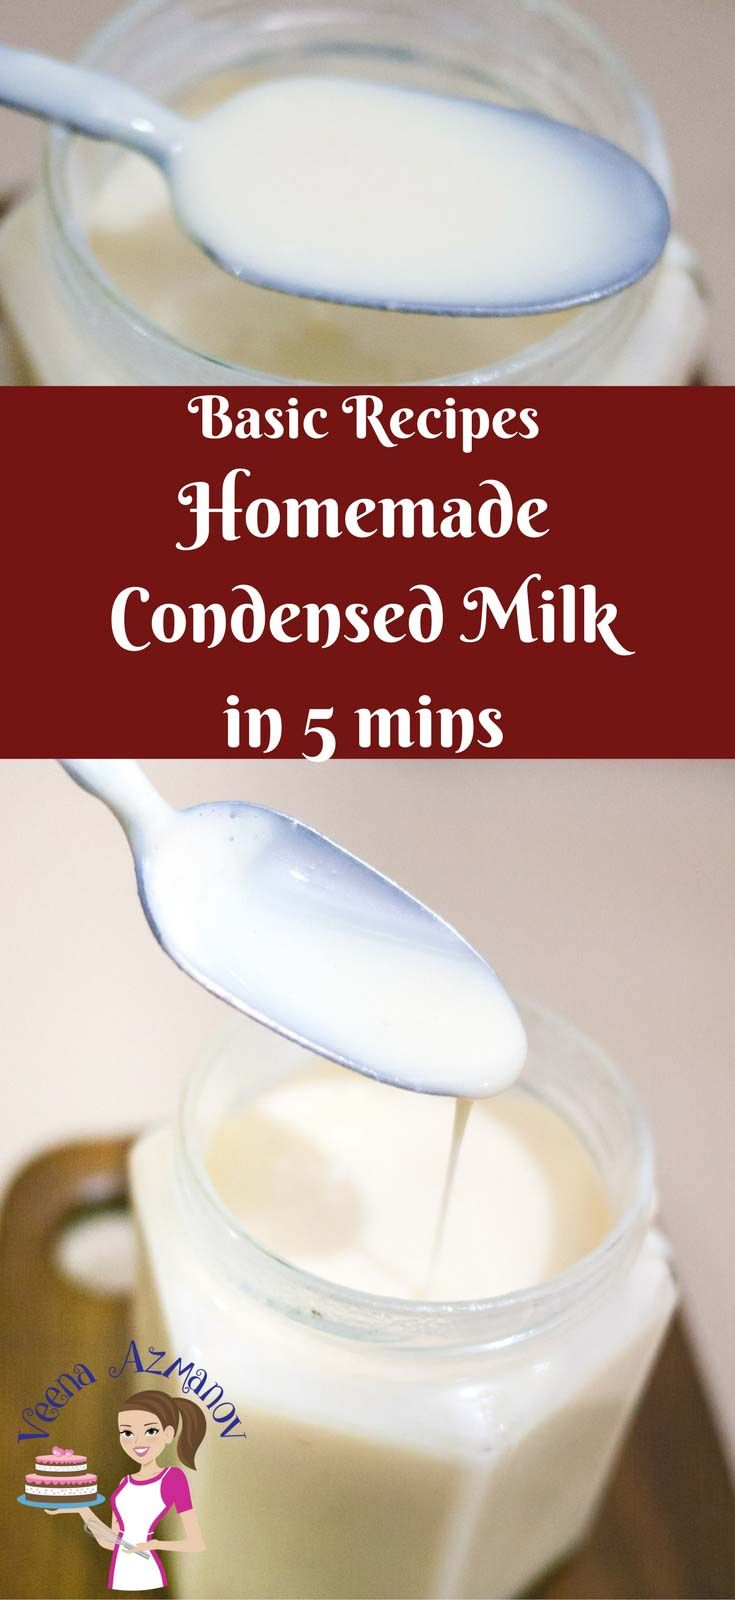 Homemade Condensed Milk In 5 Minutes How To Make Condensed Milk At Home Traditional Condensed Milk Can Tak Homemade Condensed Milk Milk Recipes Condensed Milk